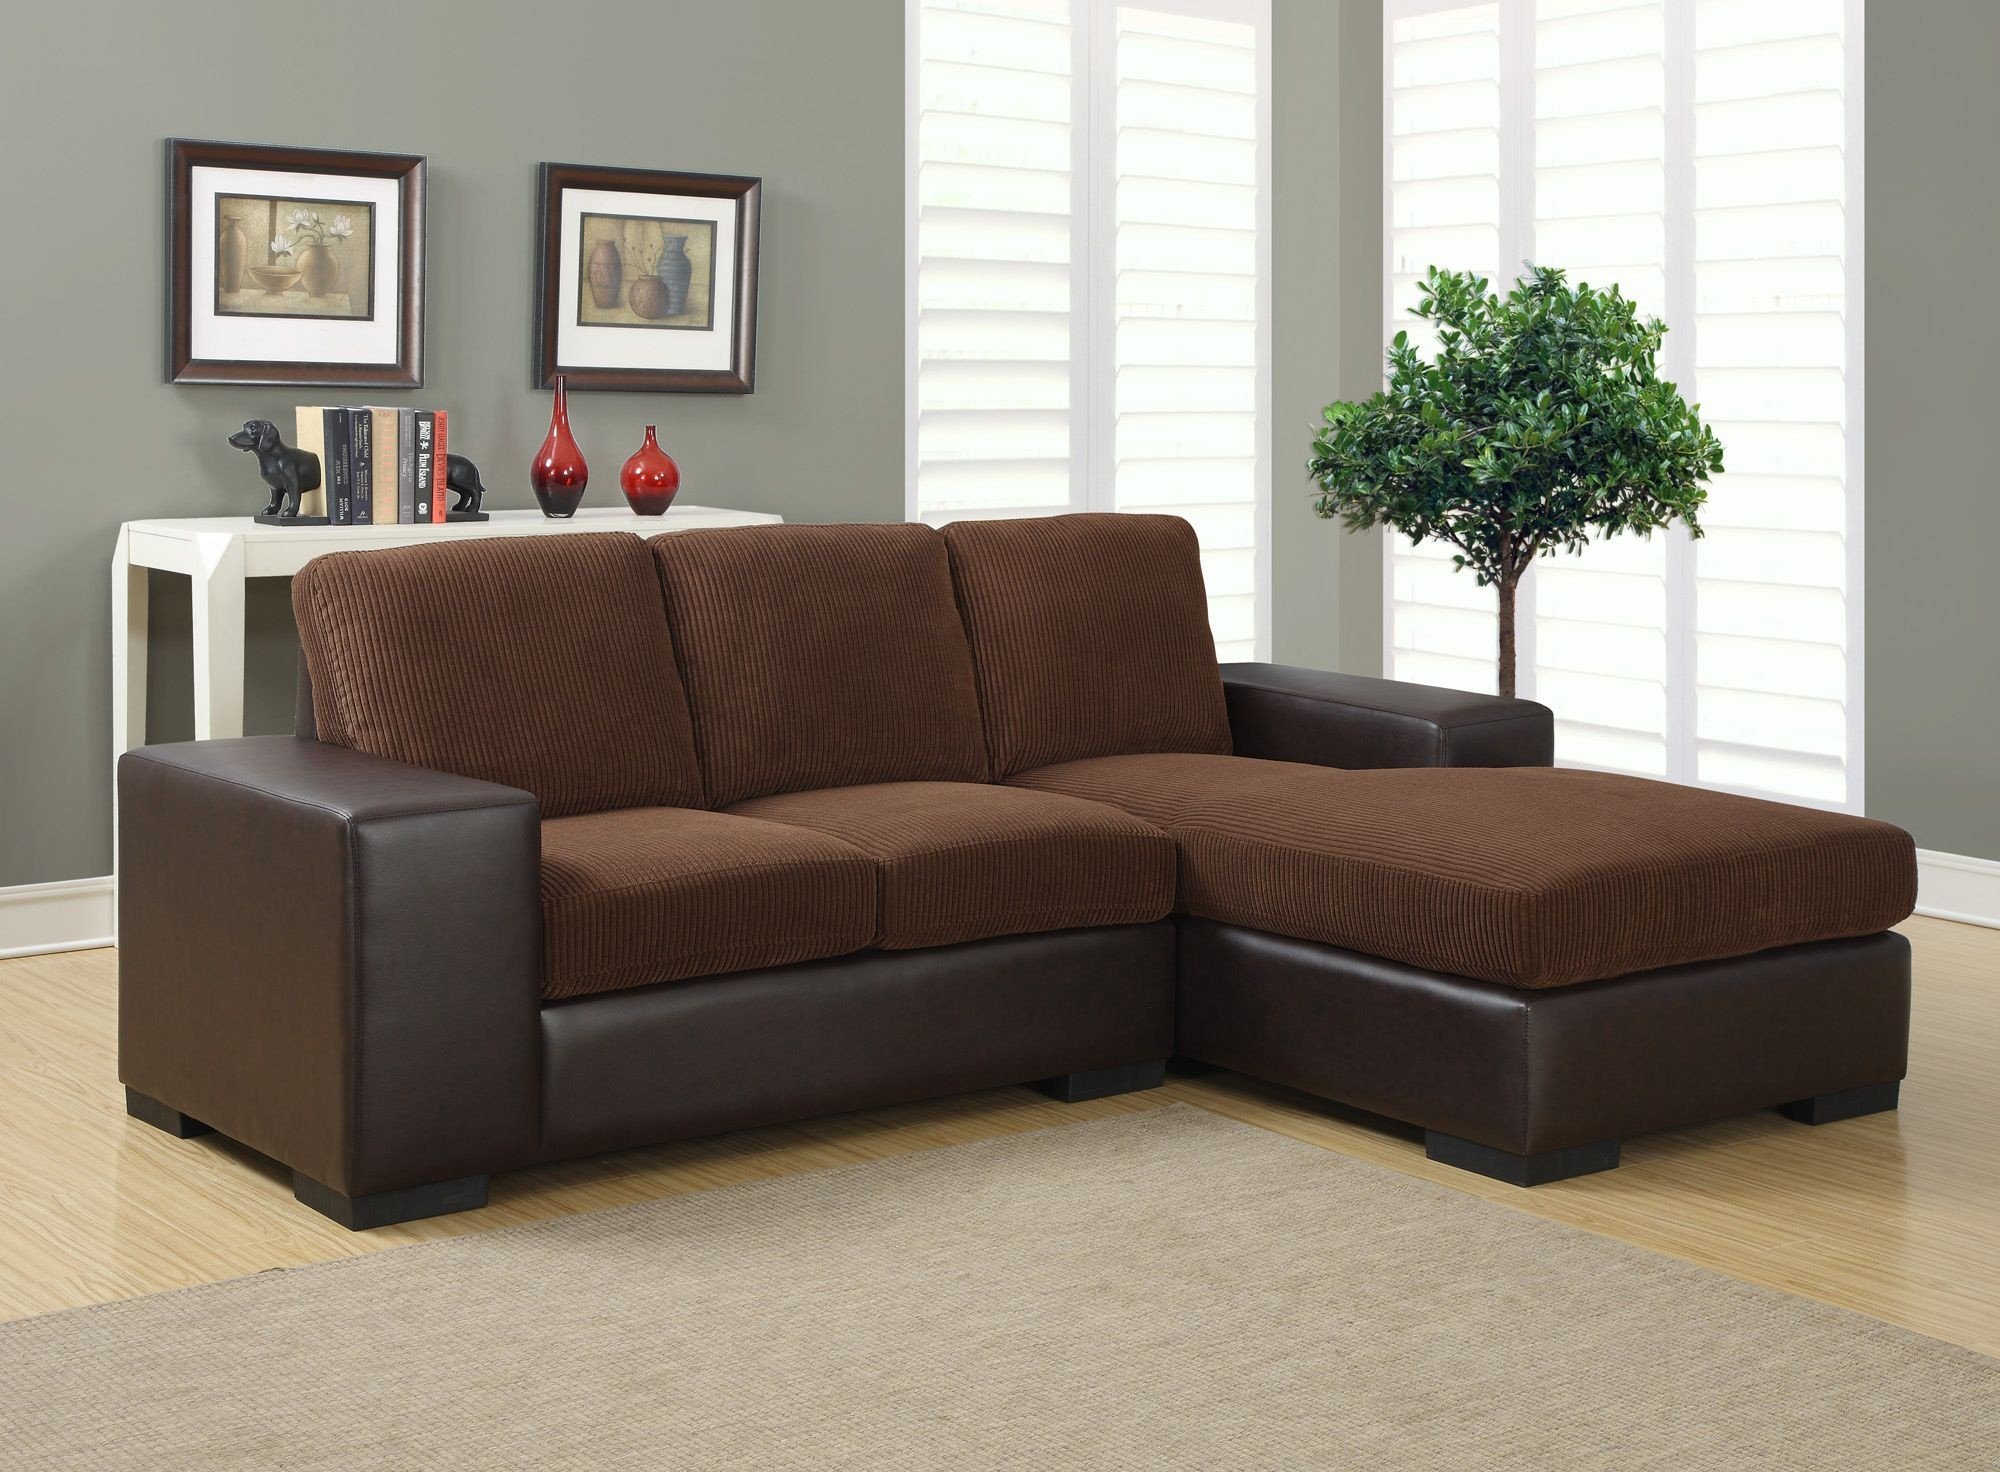 Dark brown corduroy brown sofa sectional from monarch for Brown corduroy couch